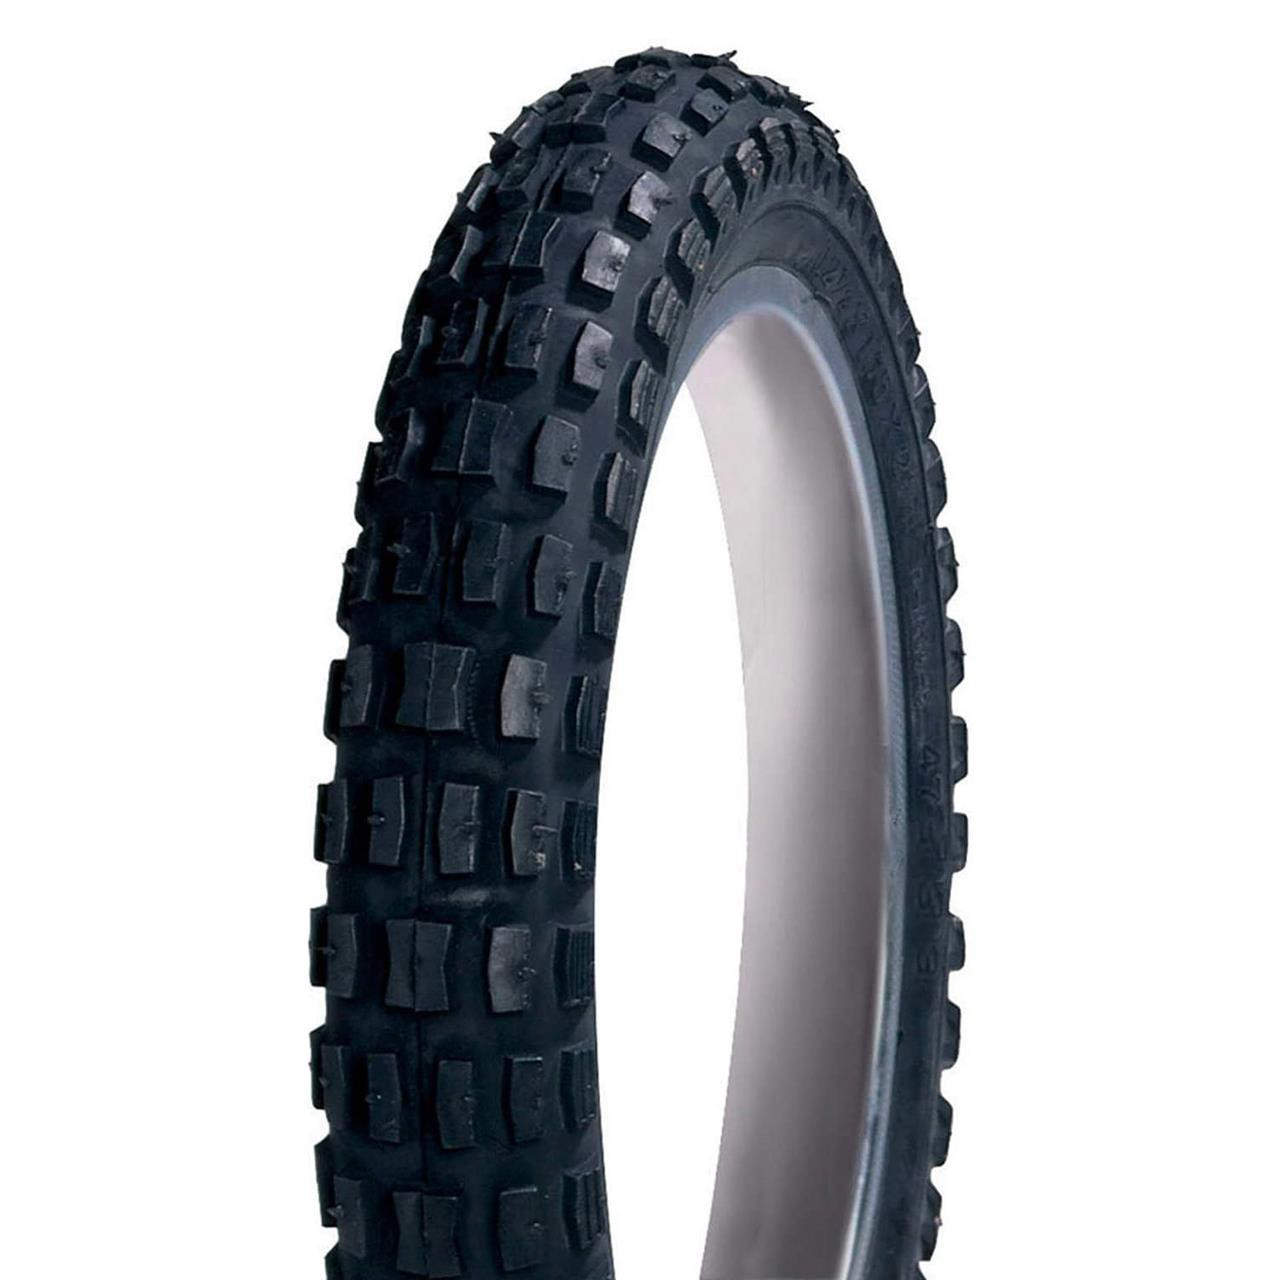 Raleigh T1780 Knobbly Cycle Tyre (Black)